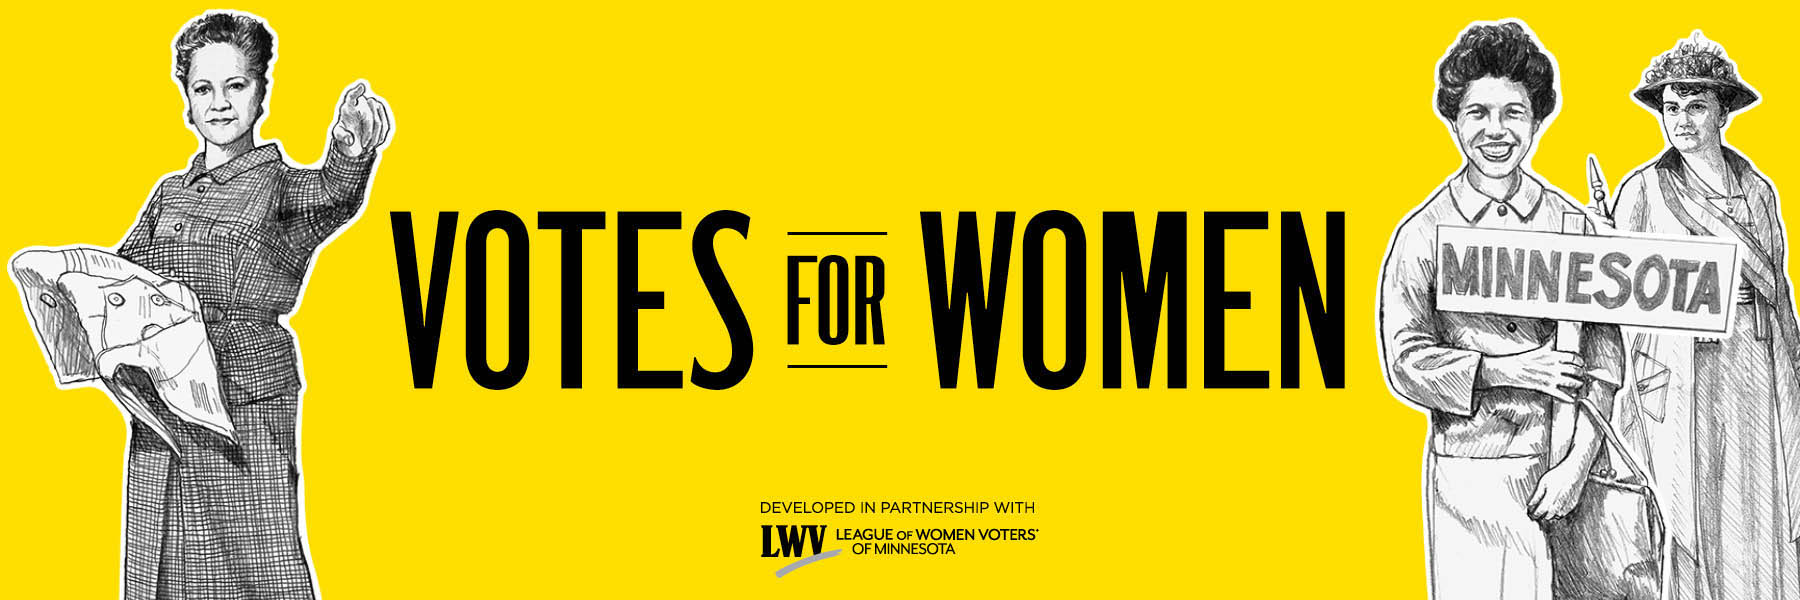 Votes for women.